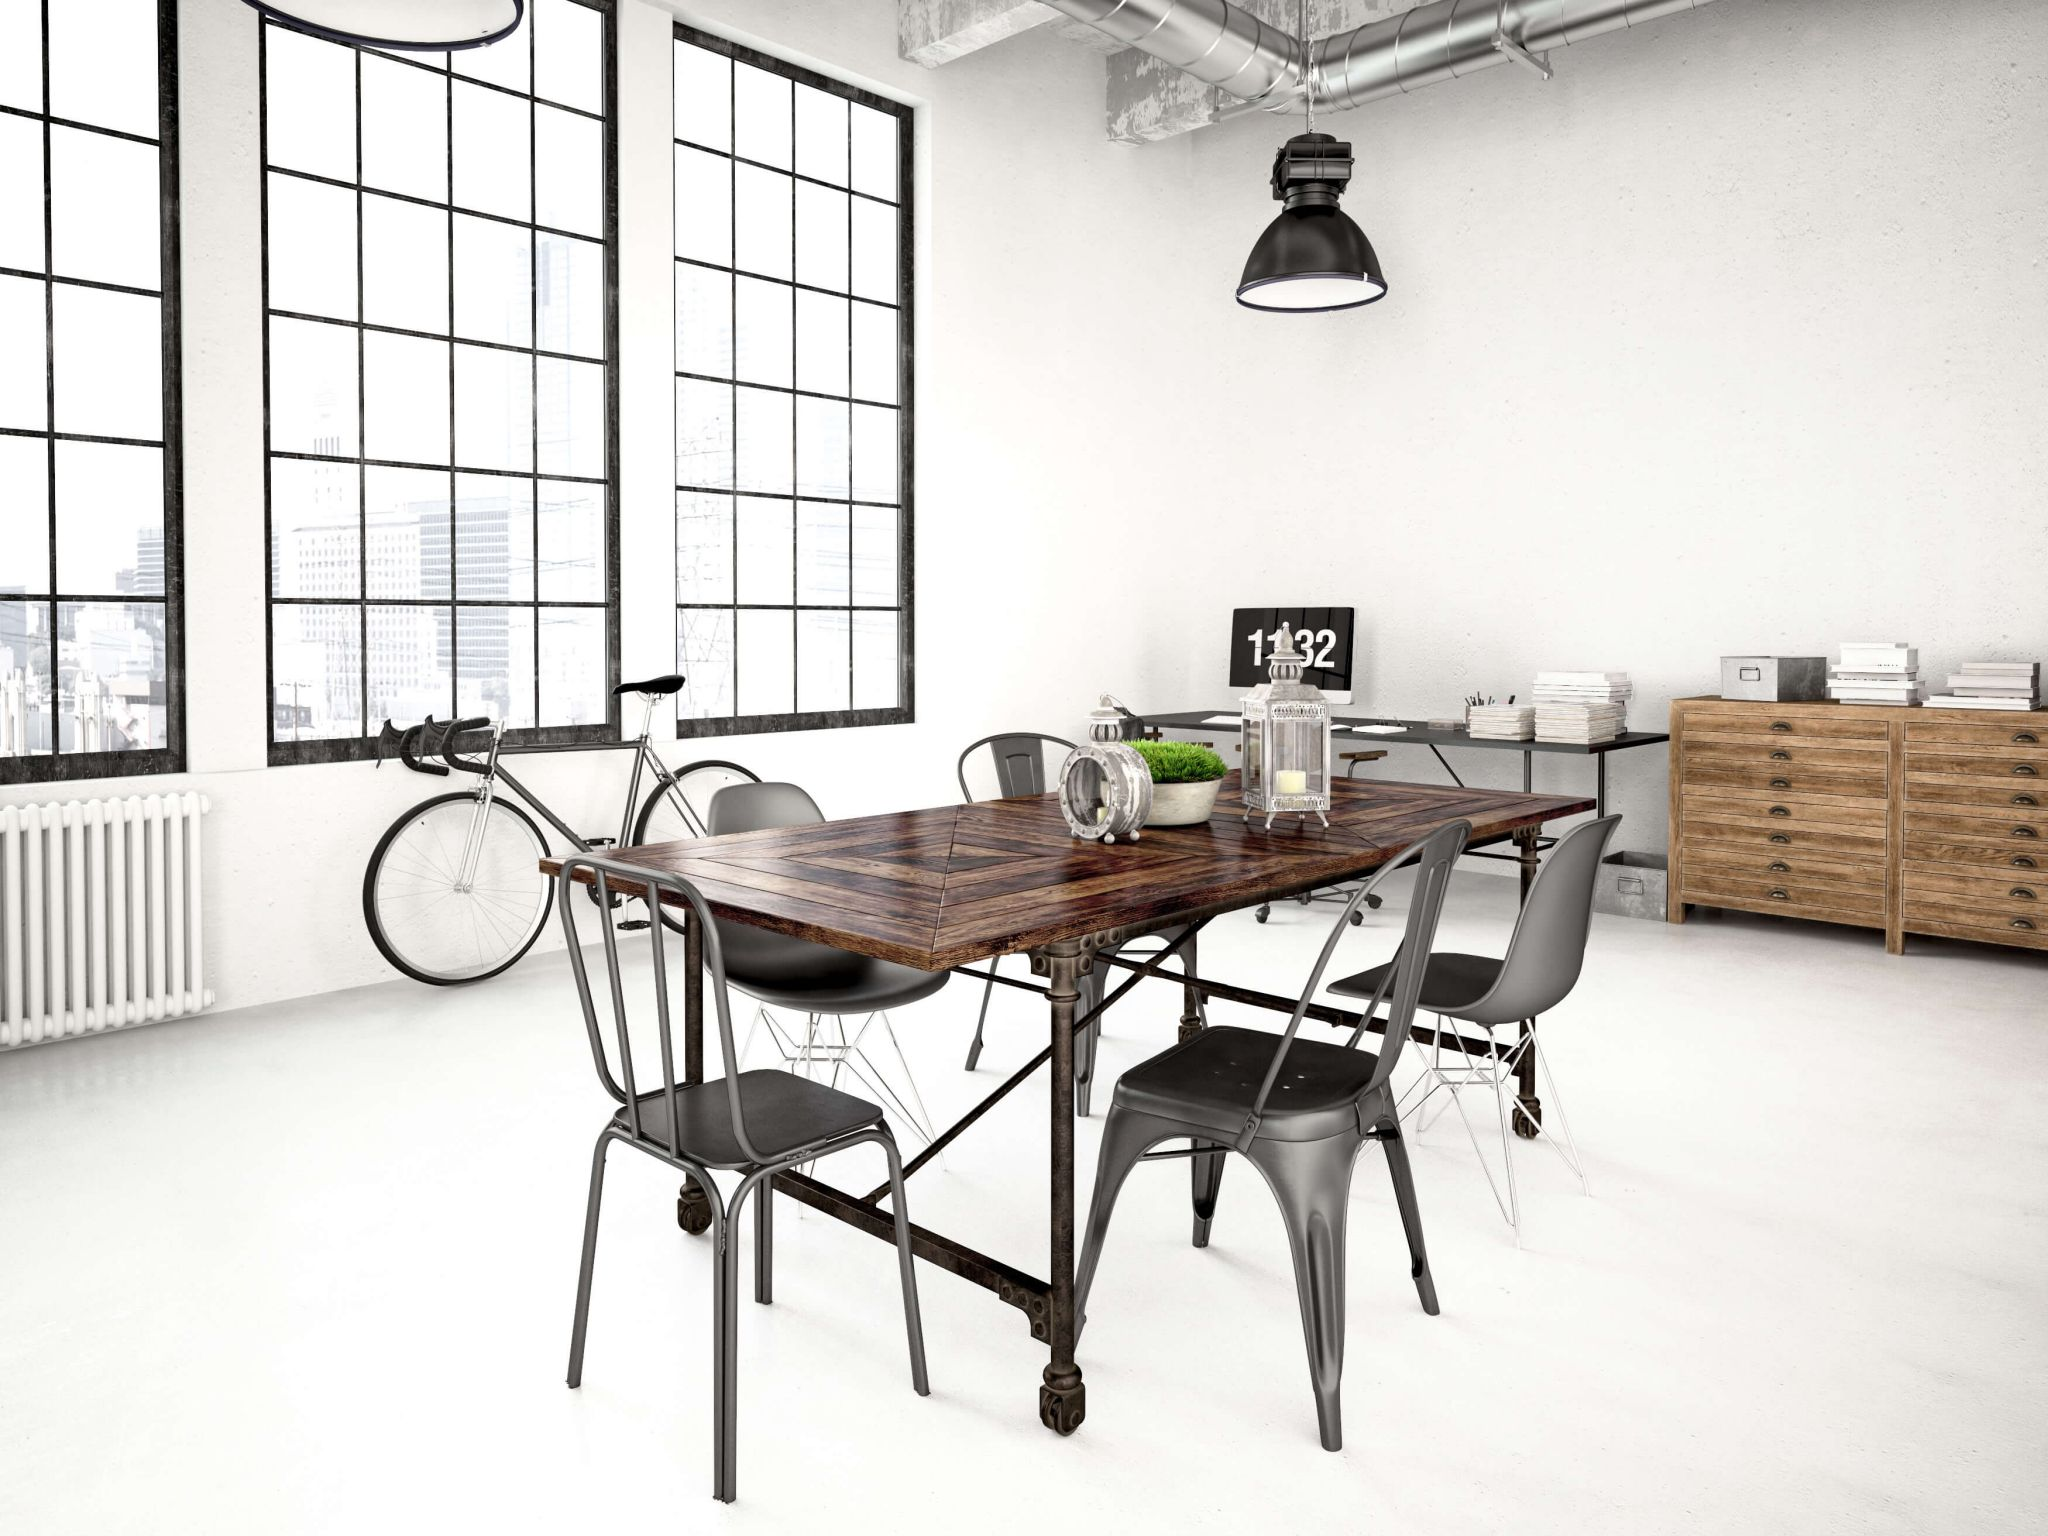 metal decor - industrial style living space